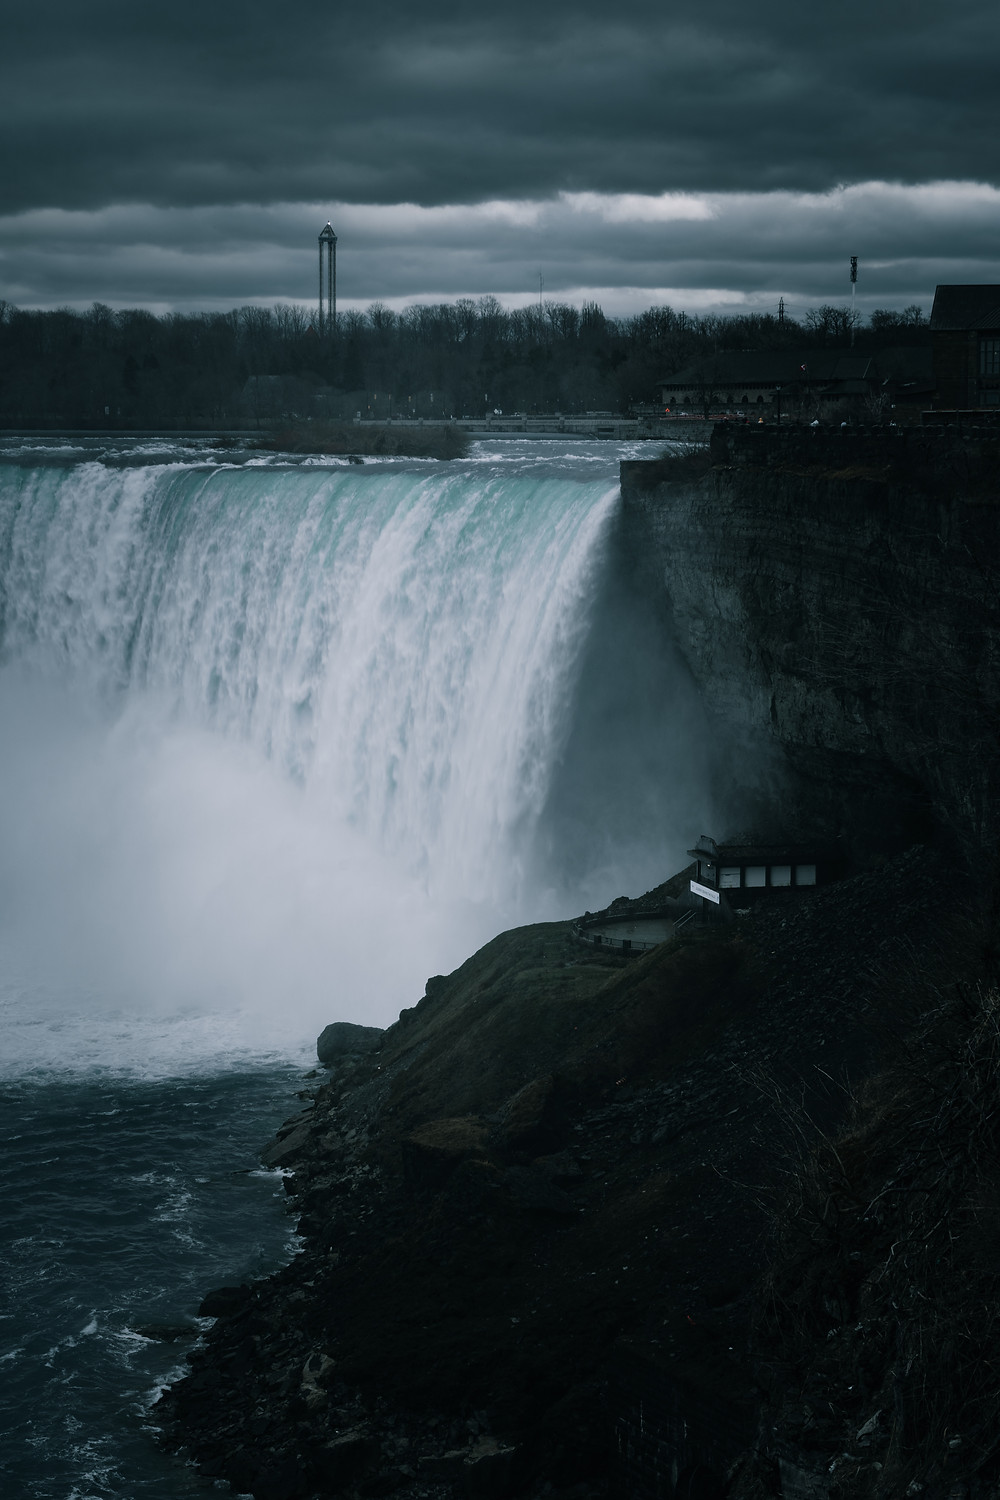 Quick shutter speed to capture the falls. Sony, Canon, Pentax, Fuji and Nikon can all shoot this photo as well.